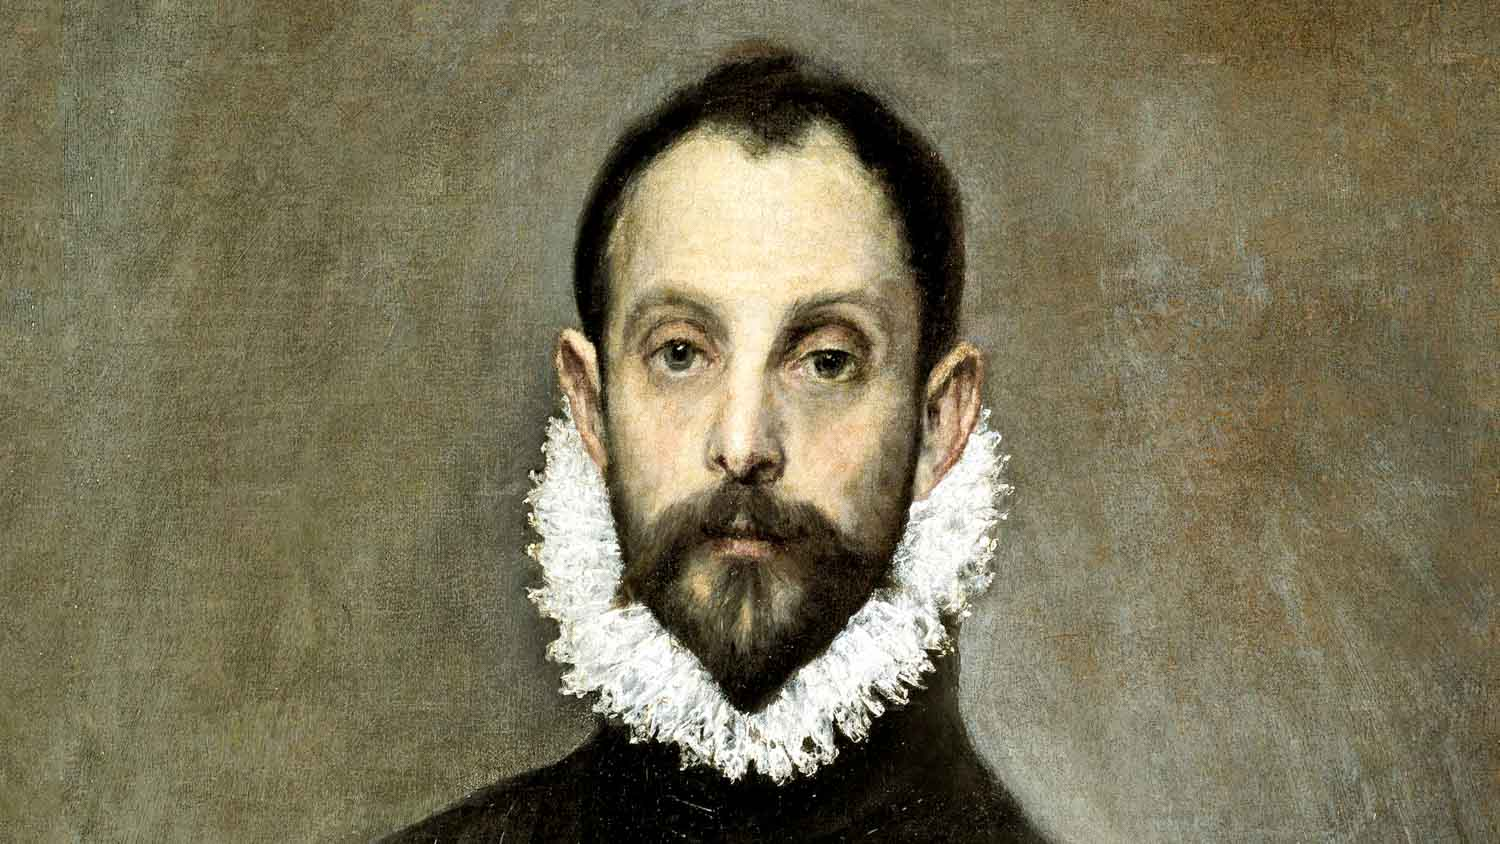 el greco and his artwork El greco was known to claim that an artist must study the masters but guard the original style that beats within your soul, emphasizing the importance of establishing and being true to his own vision and individual artistic language.